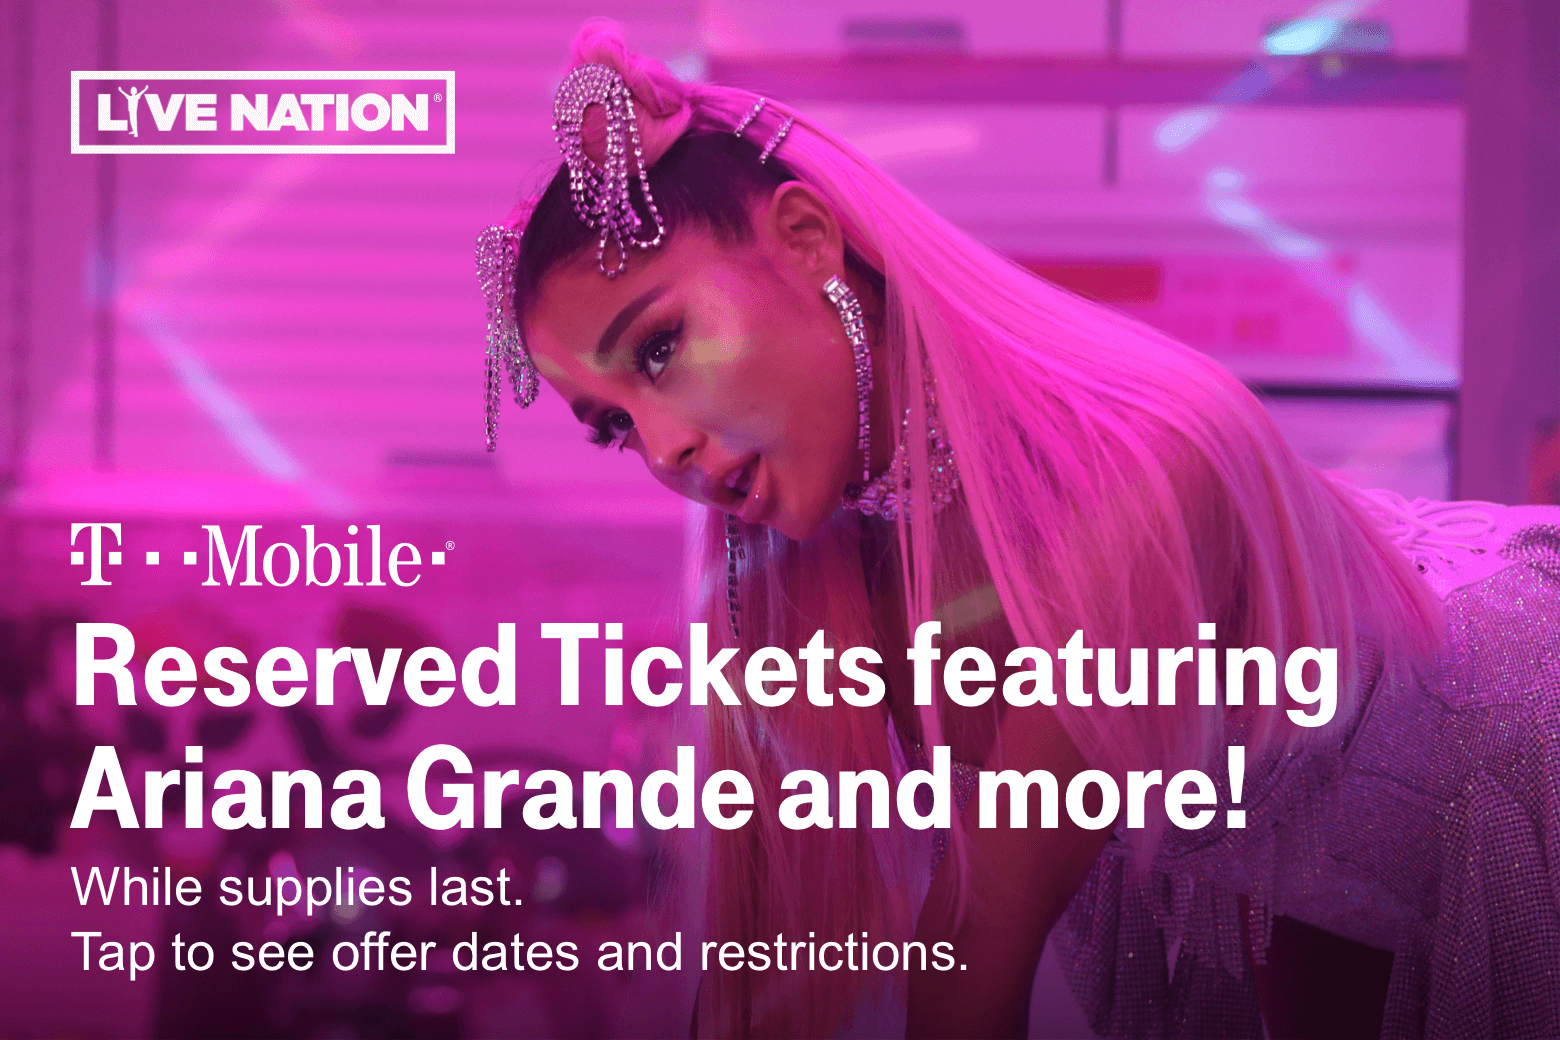 Live Nation. Reserved Tickets featuring Ariana Grande and more!. While supplies last. Tap to see offer dates and restrictions.